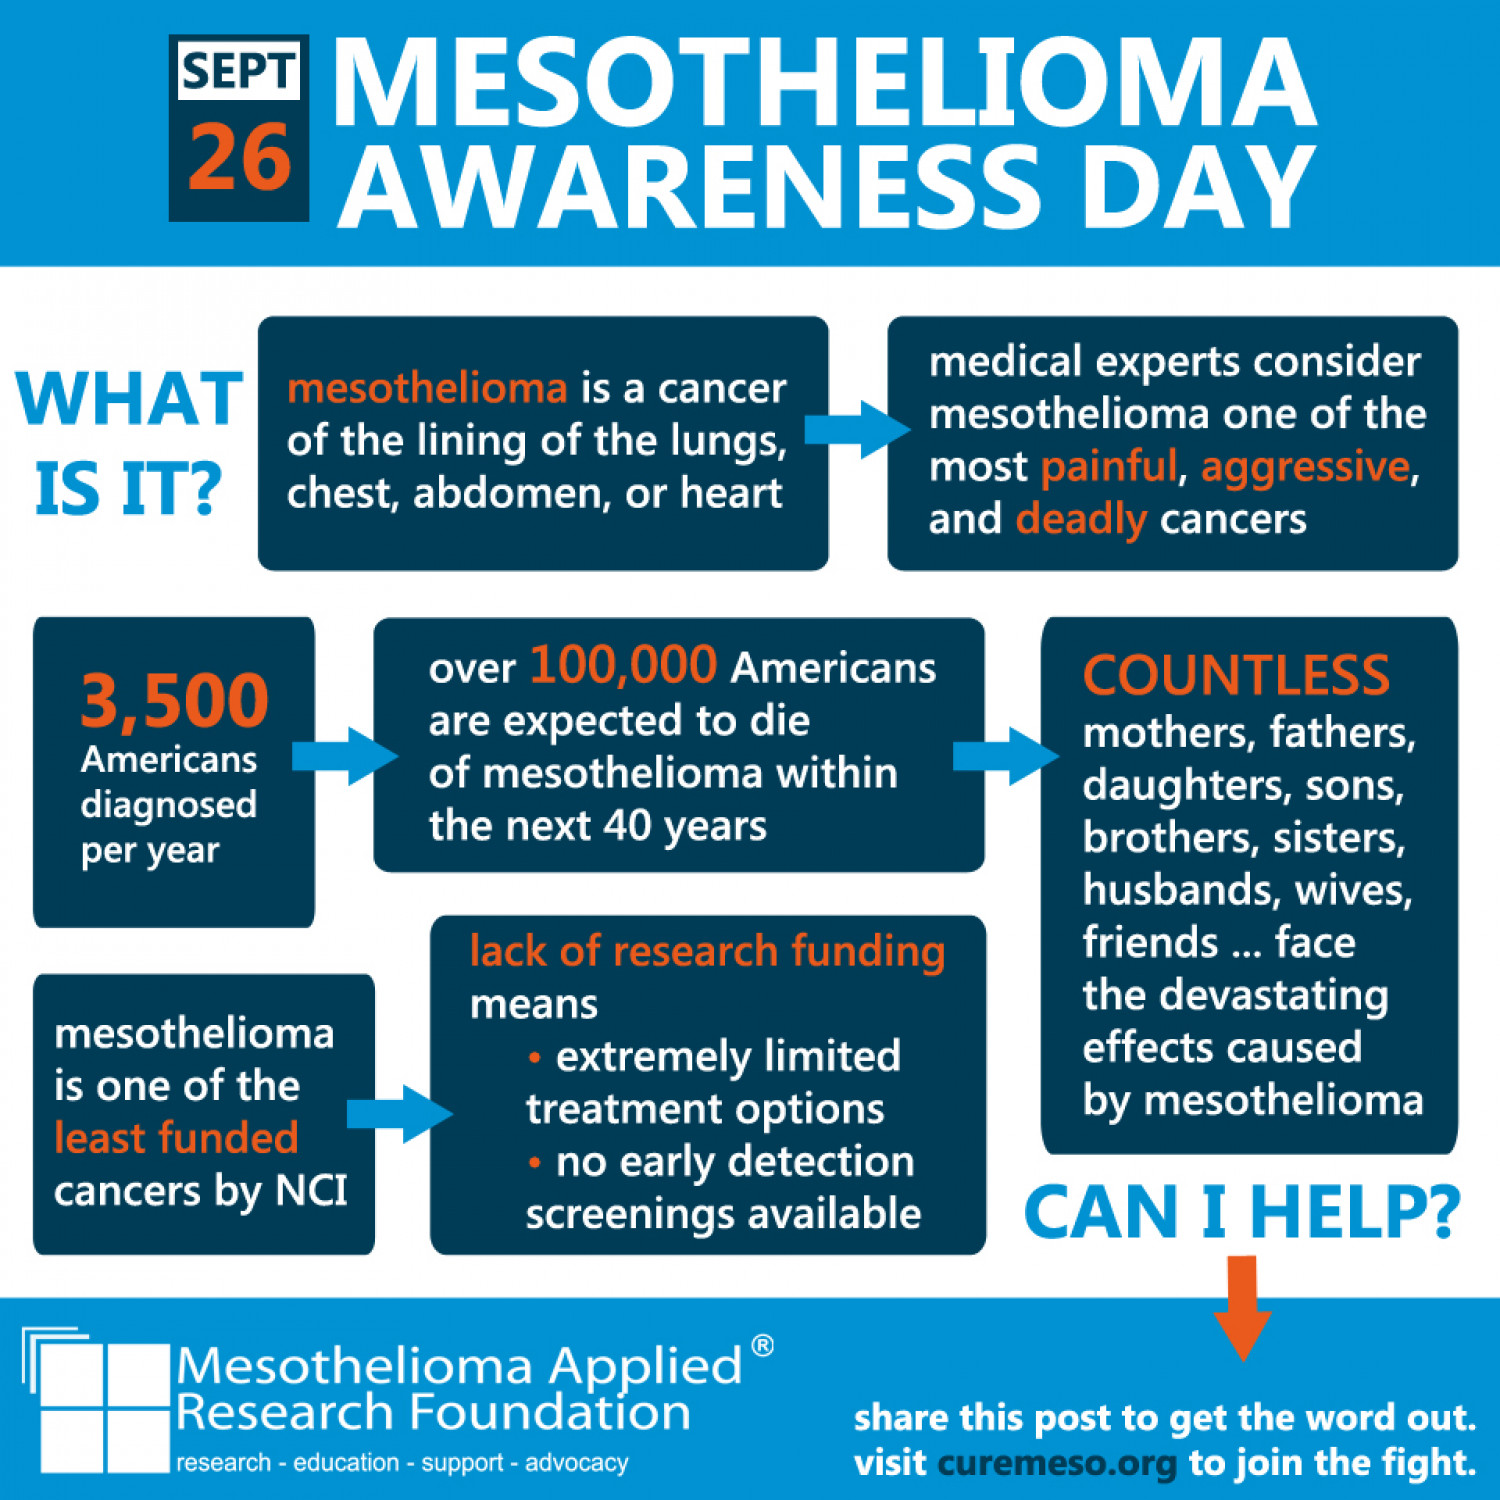 Mesothelioma Awareness Day -- September 26, 2013 Infographic